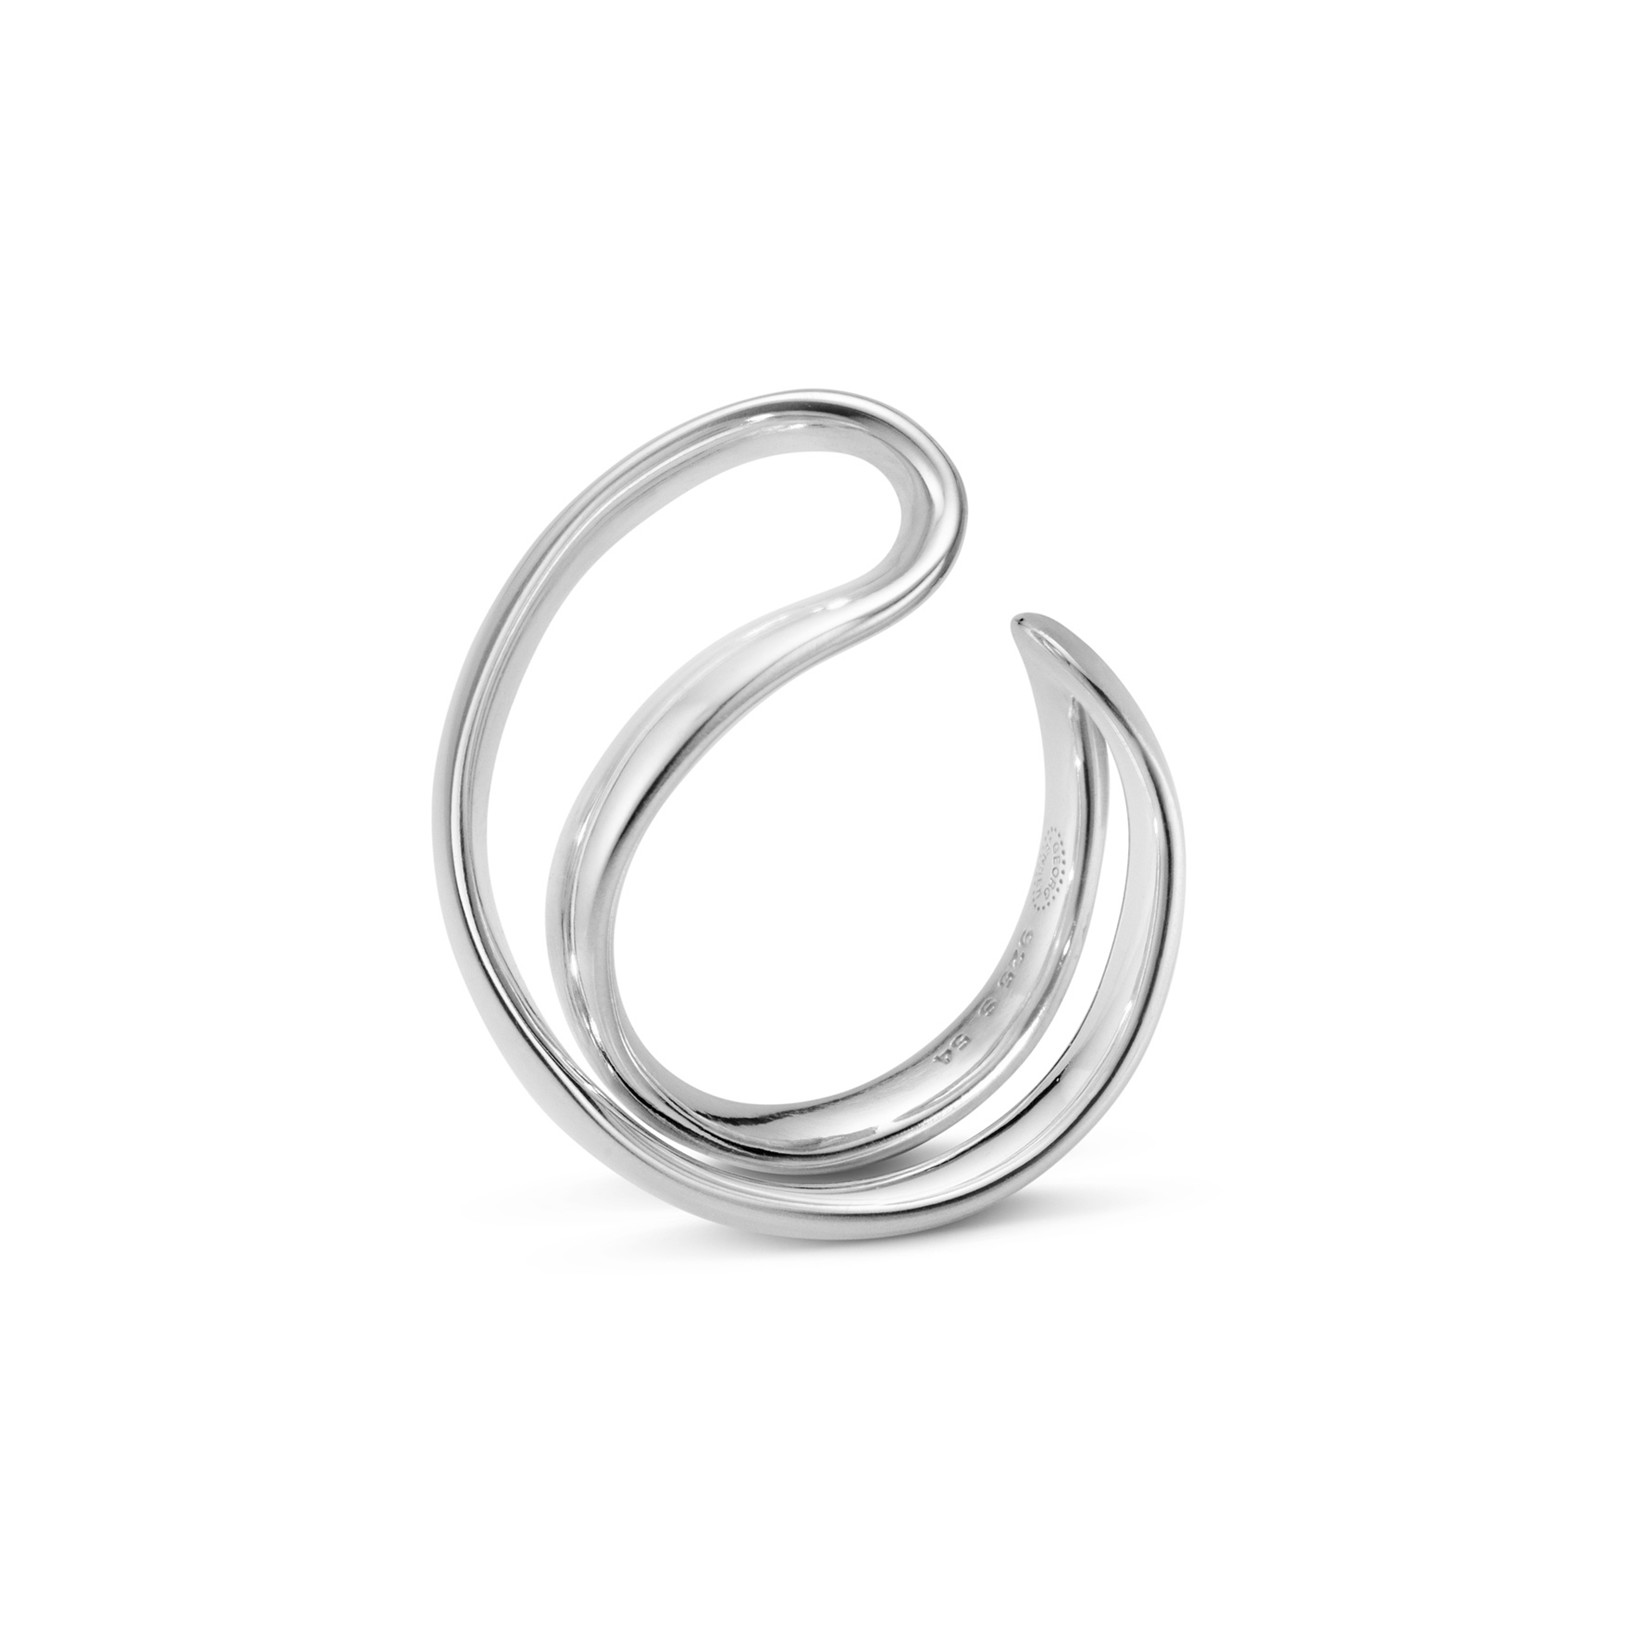 Georg Jensen Infinity ring 10013677